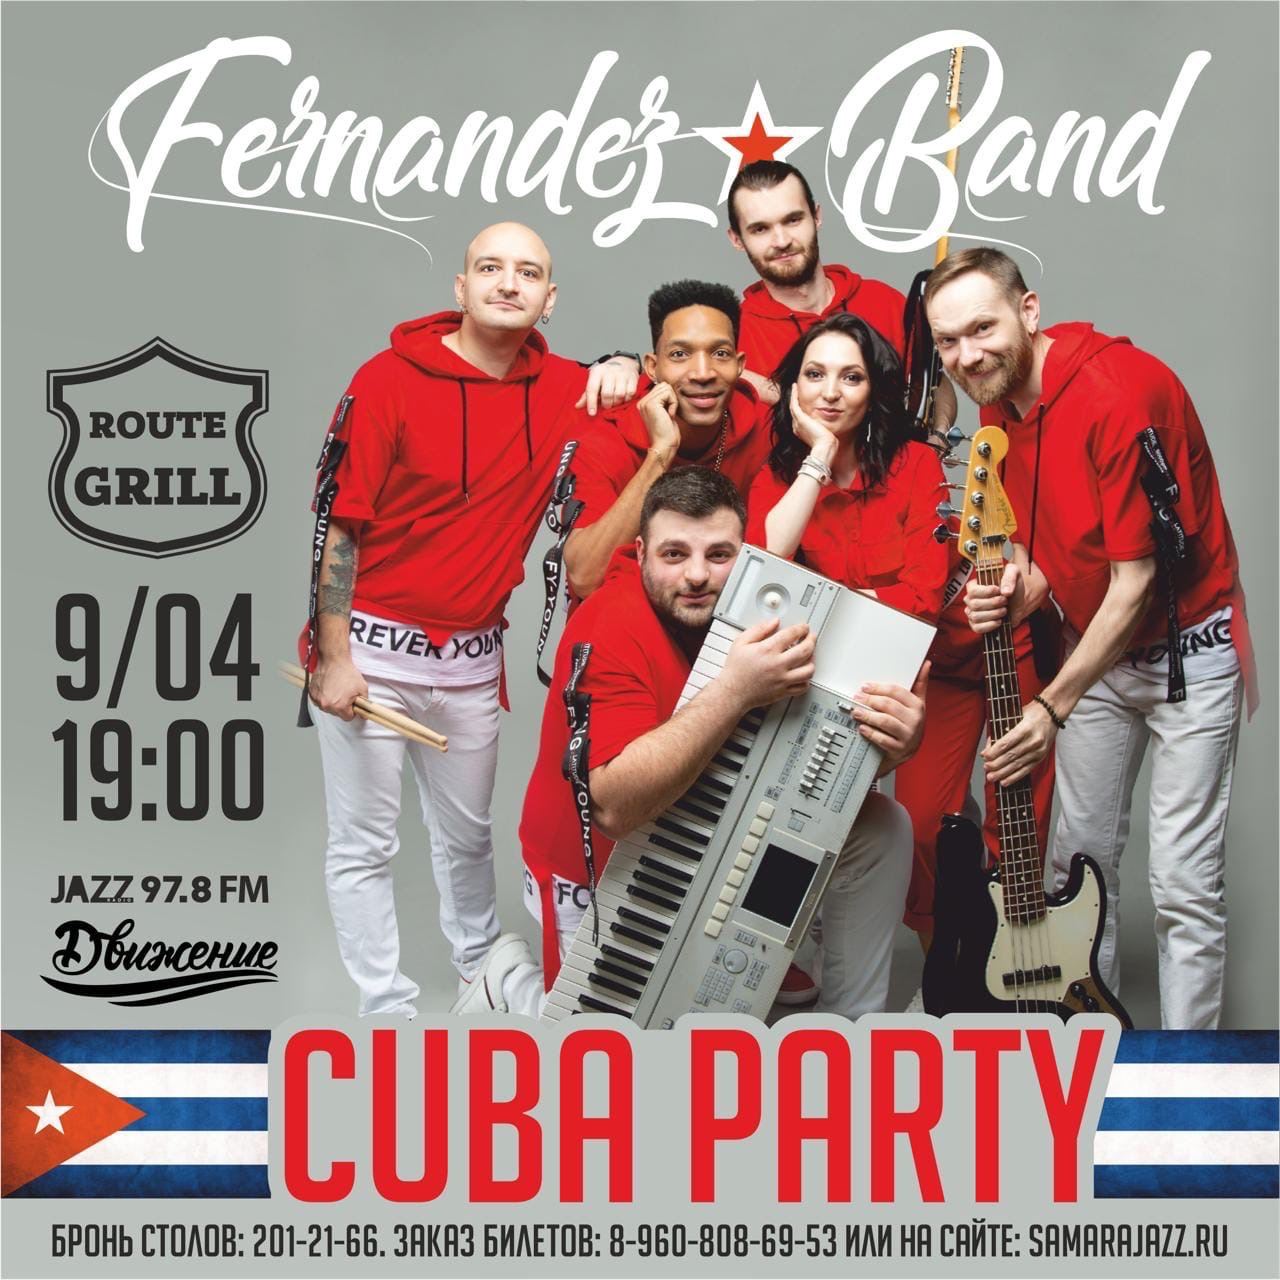 Афиша Самара 9.04 CUBA PARTY в Route Grill Bar